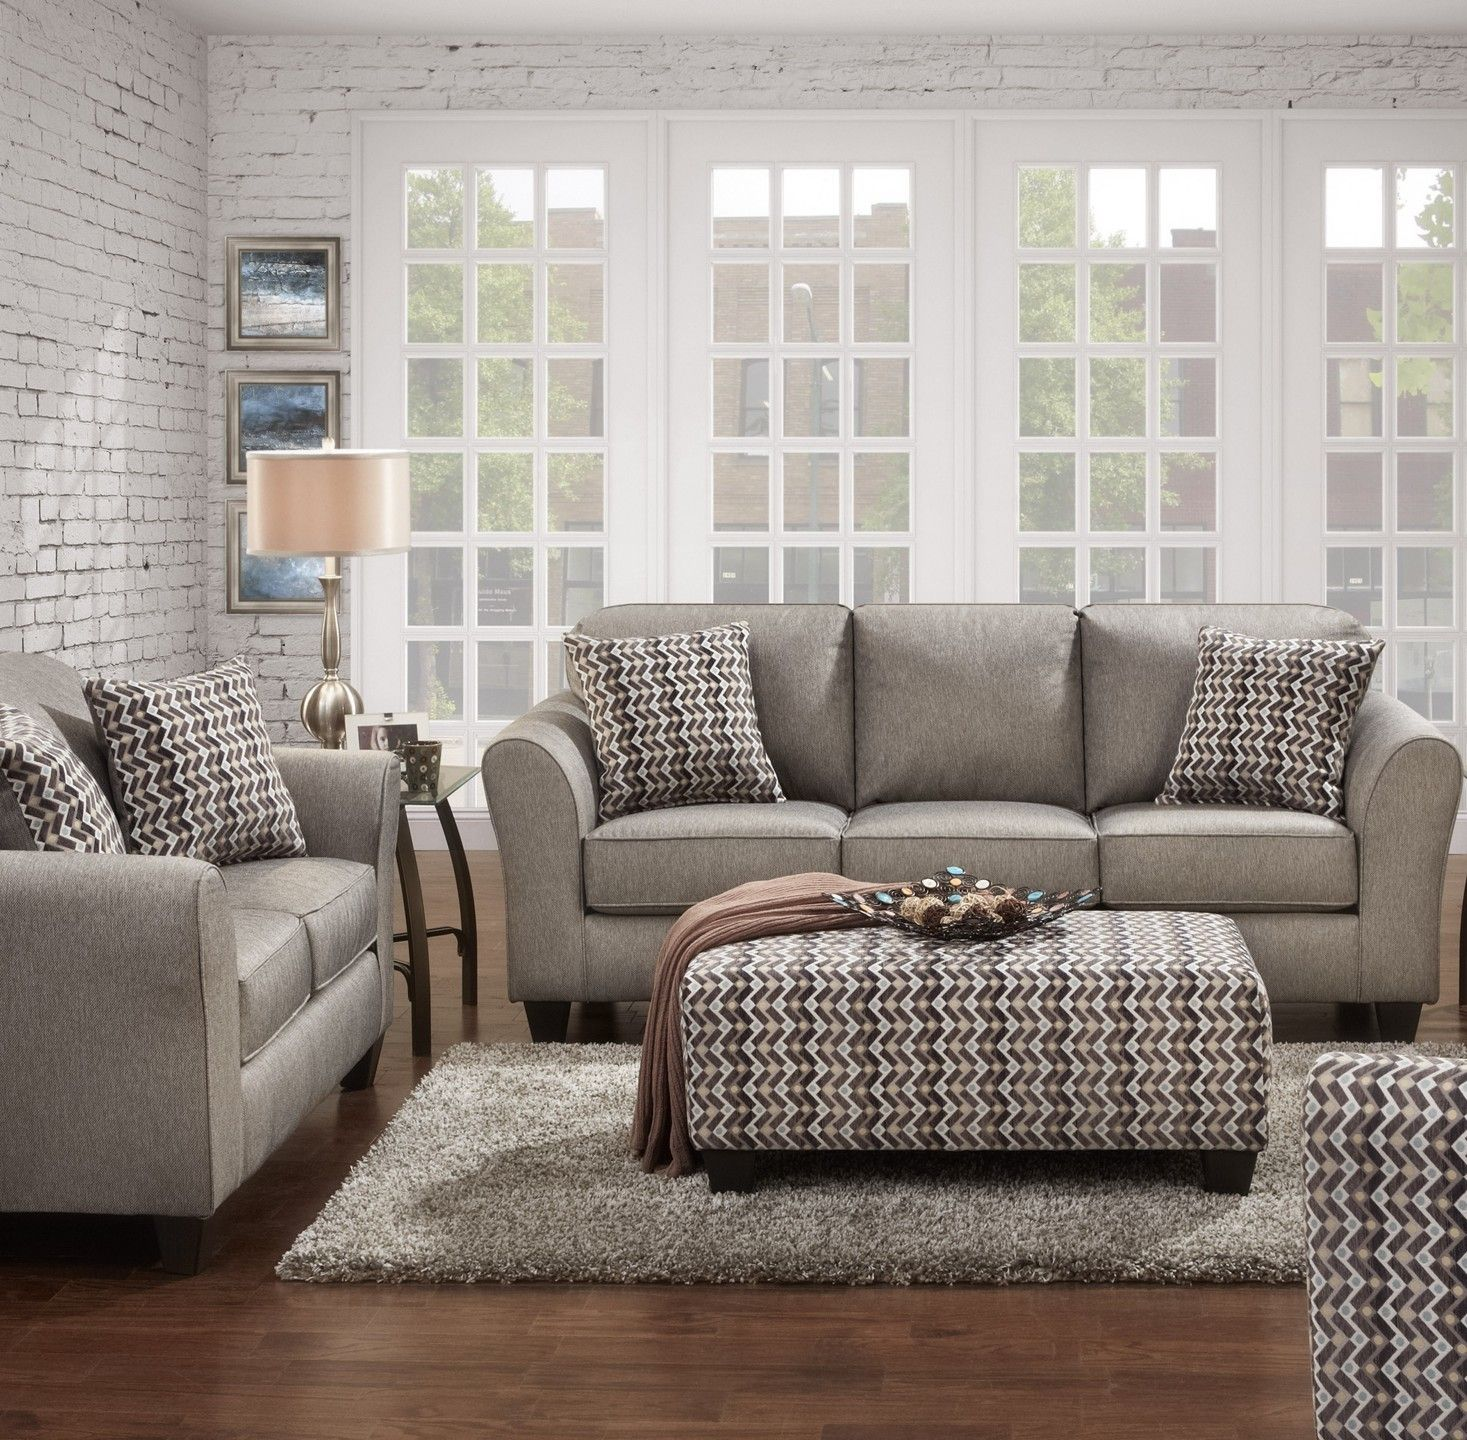 Carlos 3 Piece Living Room Set  House Decorating  Pinterest Extraordinary Cheap Living Room Set 2018